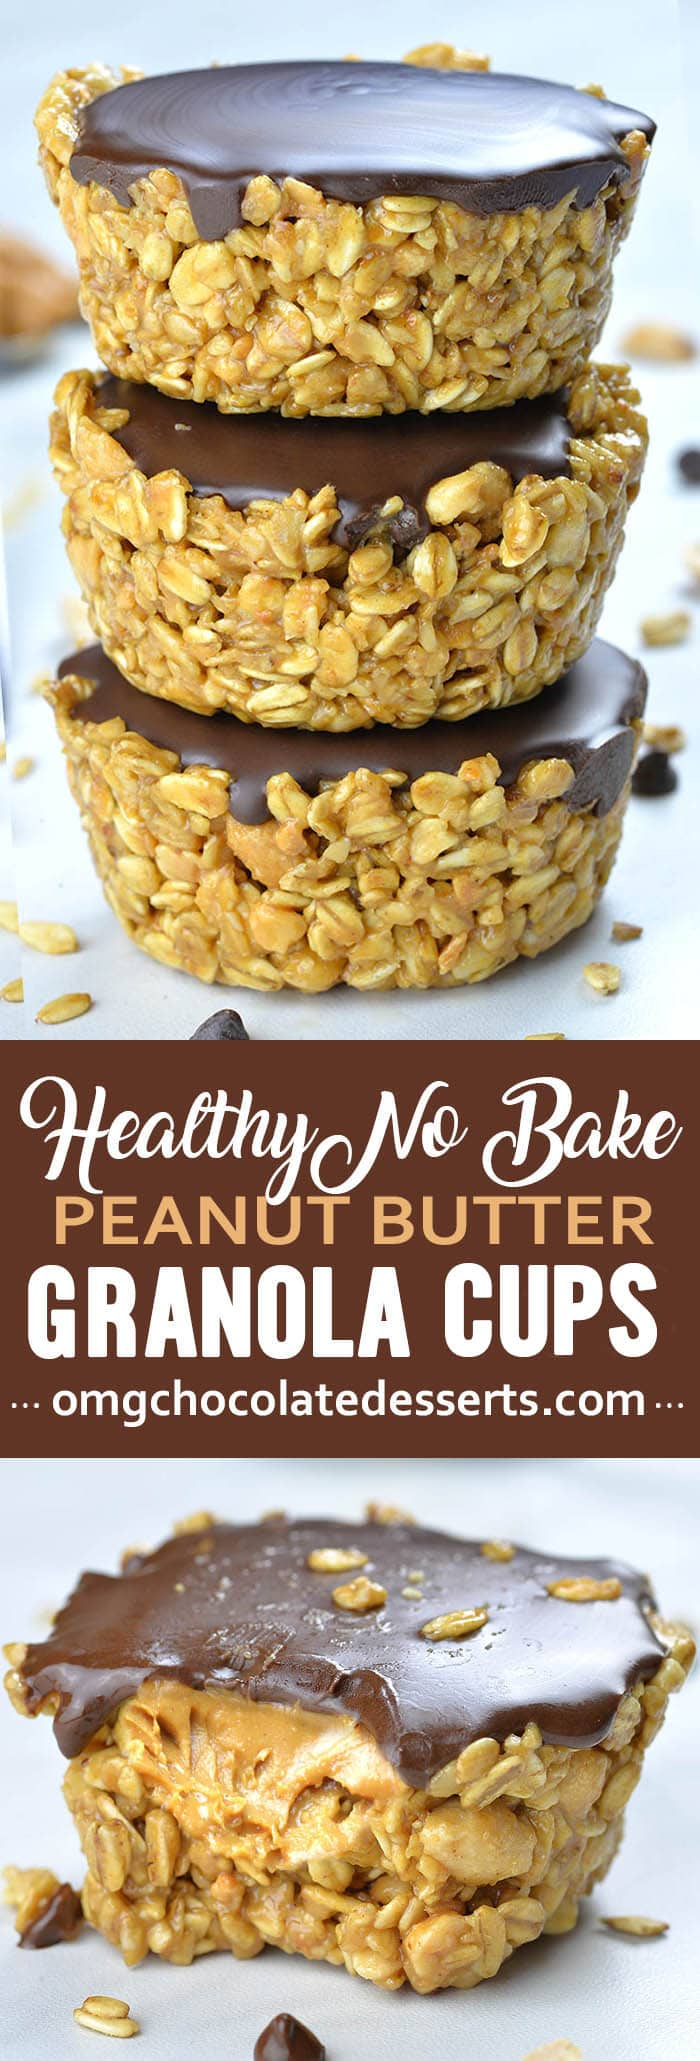 If you are looking for healthy and easy recipes to make ahead and have on hand when you need little boosts ofenergy these Healthy No Bake Peanut Butter Granola Cups are perfect.